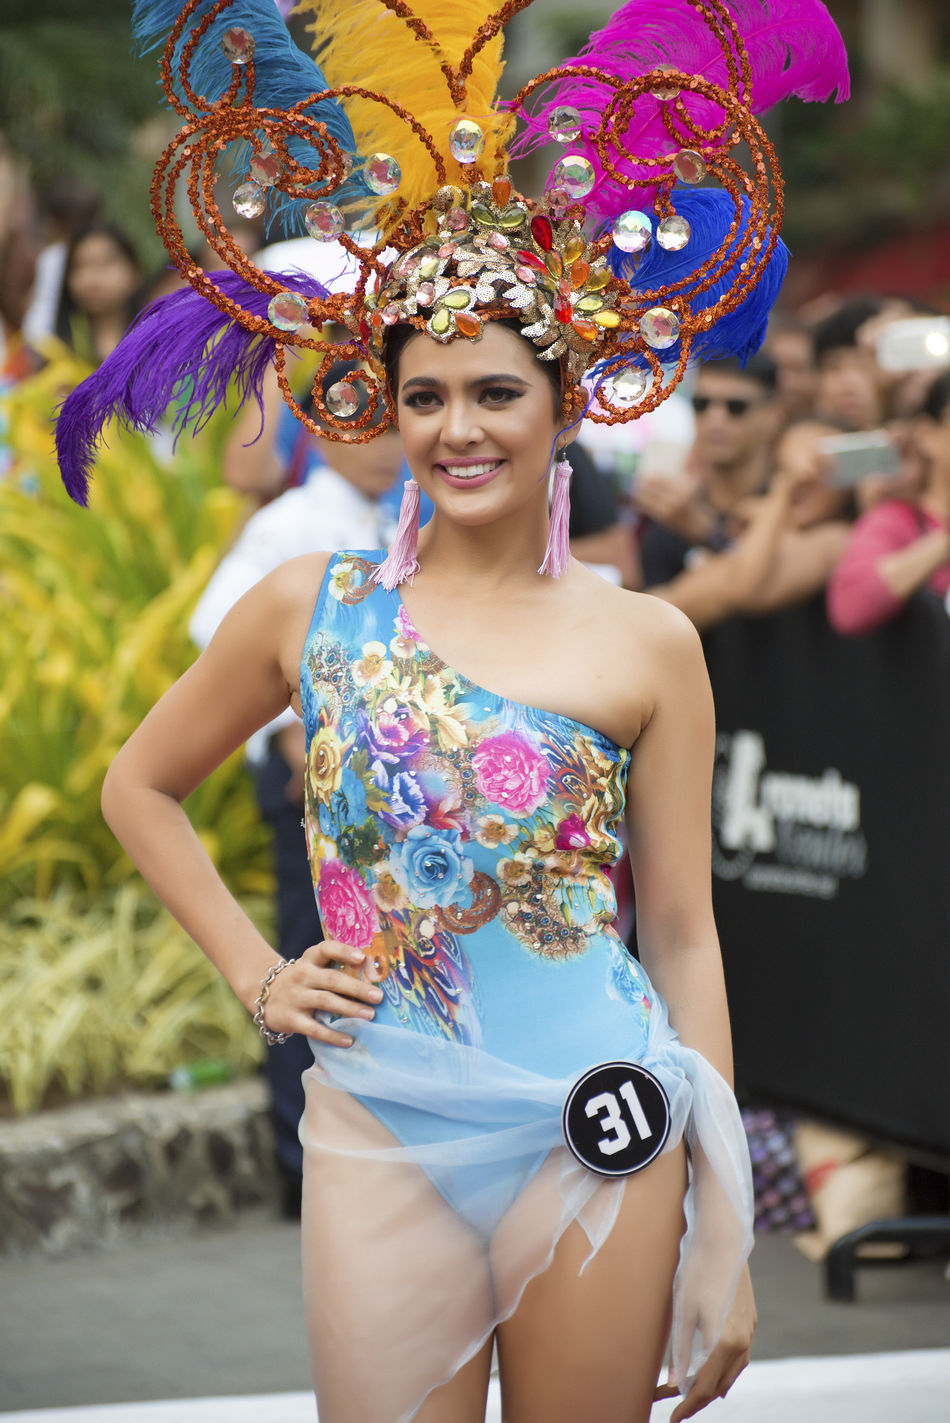 BbPilipinas EyeemPhilippines The Week On EyeEm Young Adult Enjoyment Cheerful Fun Leisure Activity Real People Outdoors Smiling Beautiful Woman Celebration Multi Colored Women Wearing Flowers Headdress Filipina Beauty Art Is Everywhere